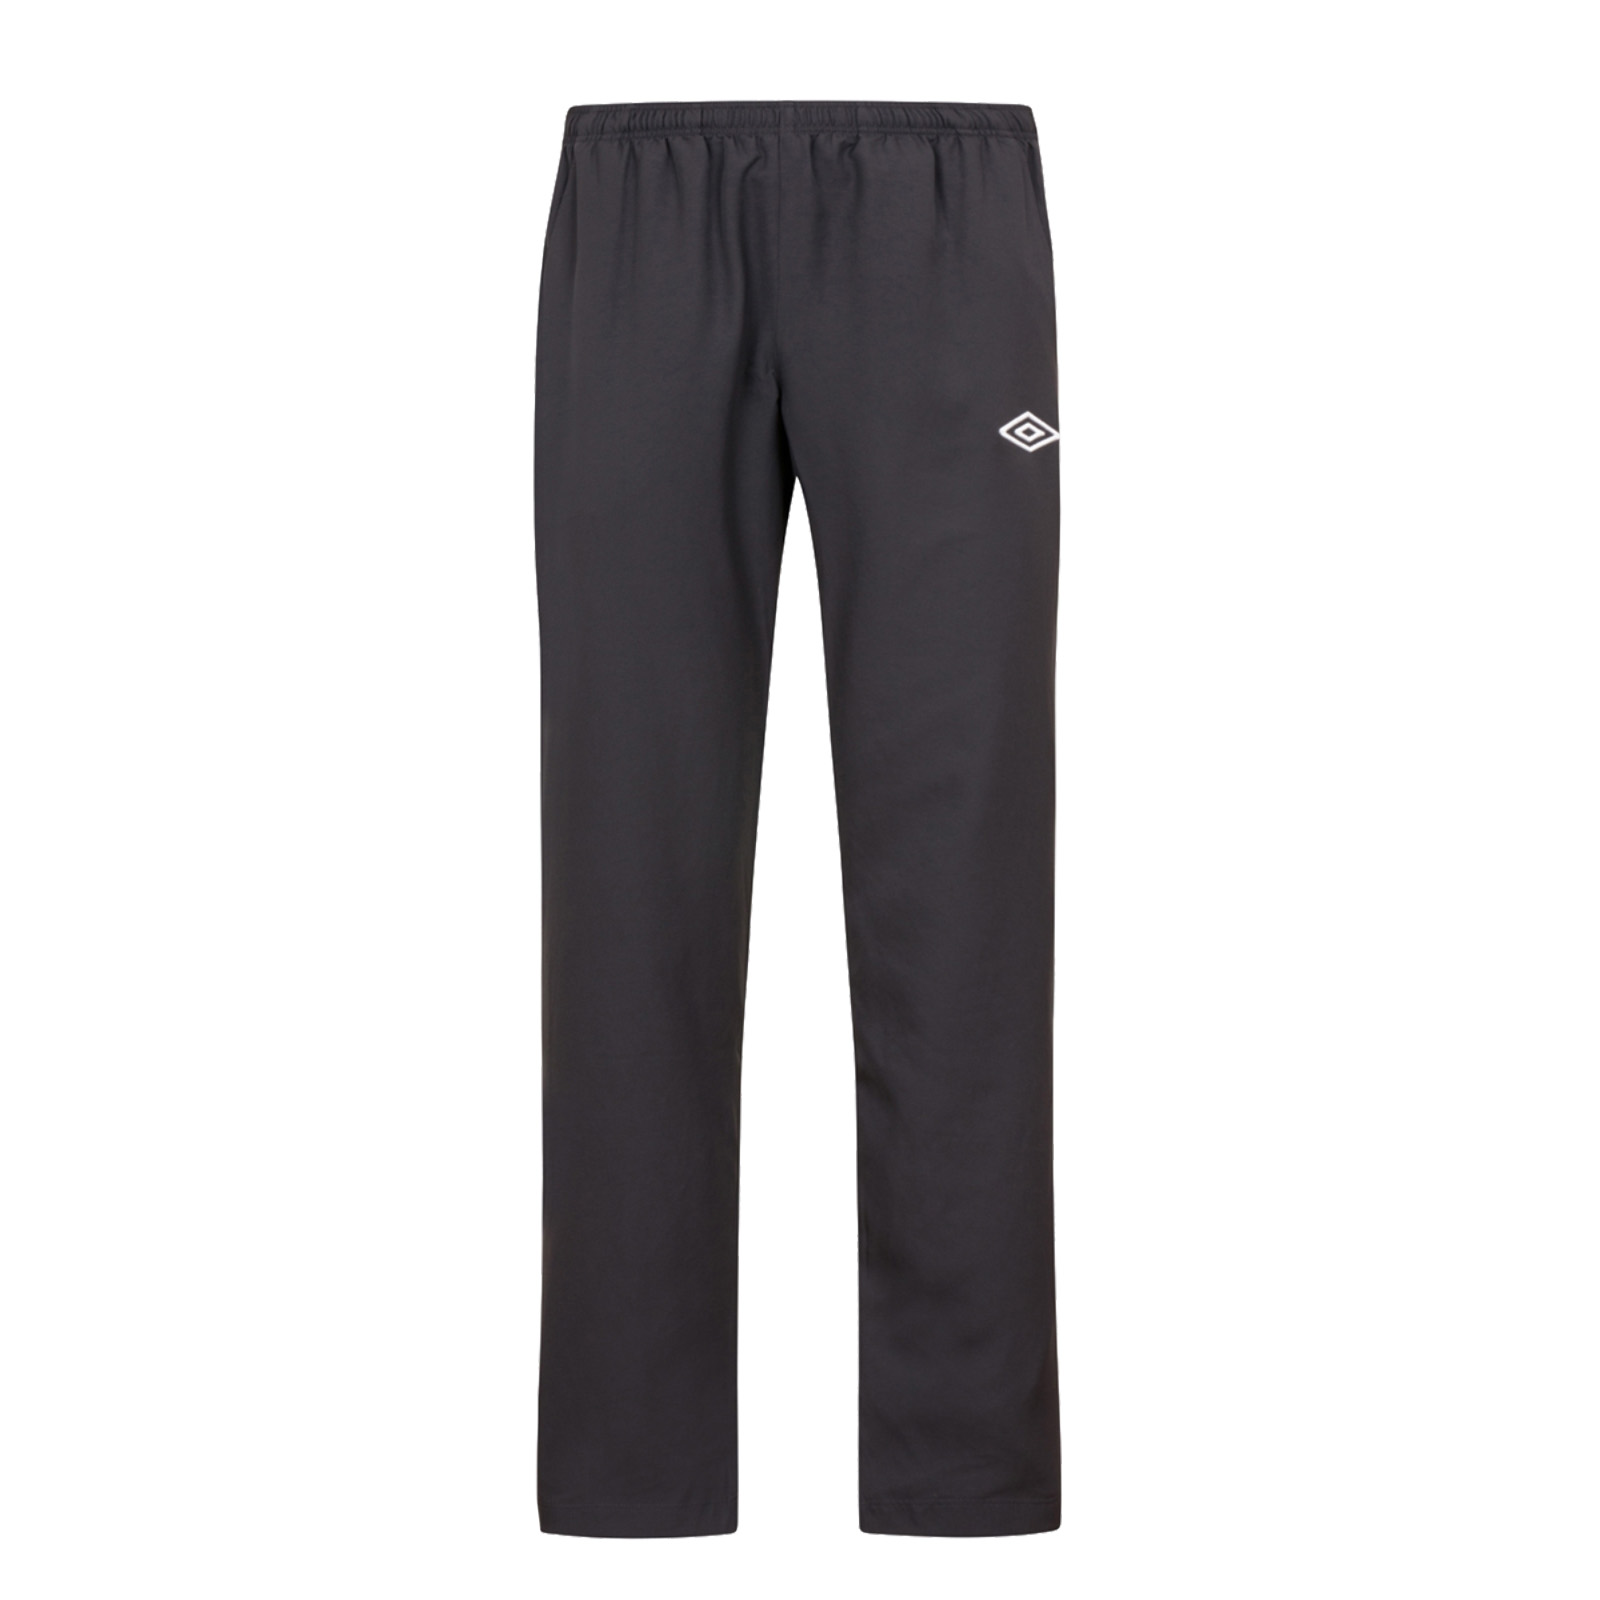 Umbro Training Woven Pants - UM159517